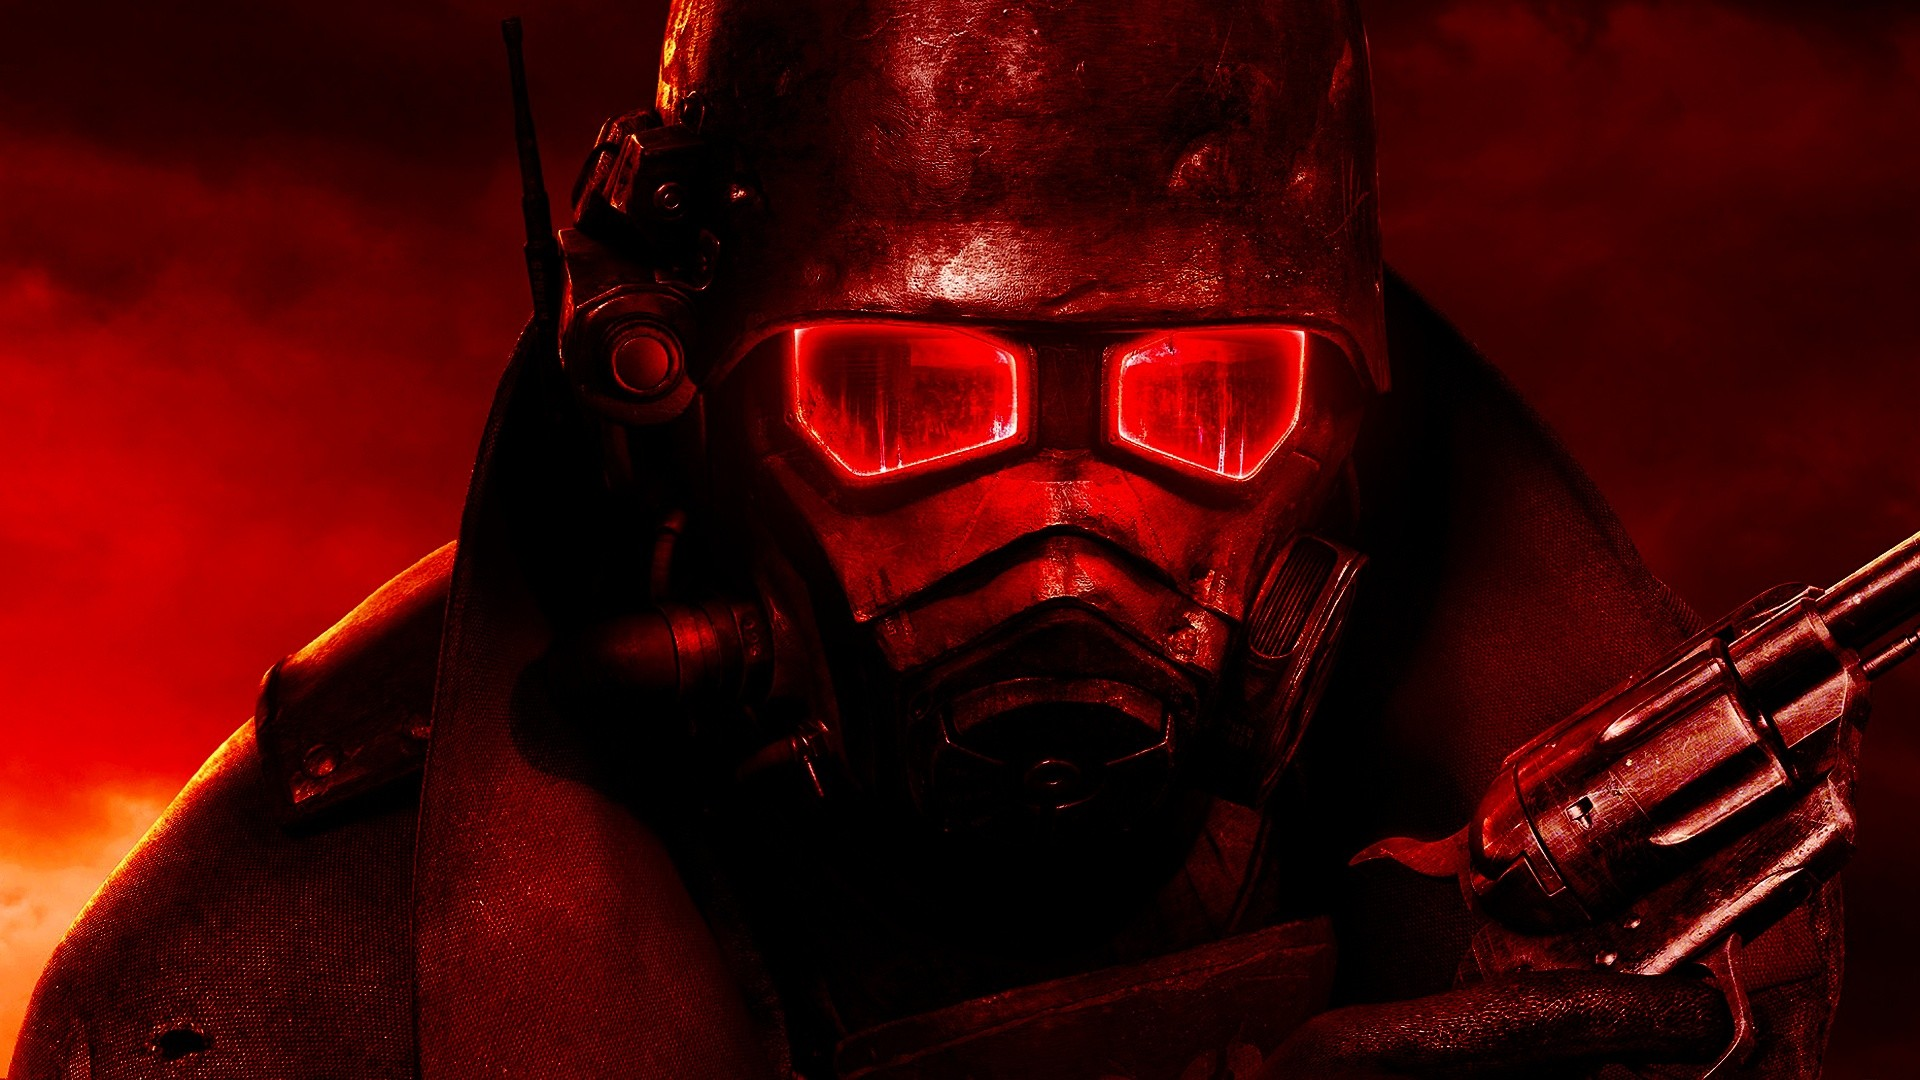 Red Hd Gaming Wallpapers 1920x1080